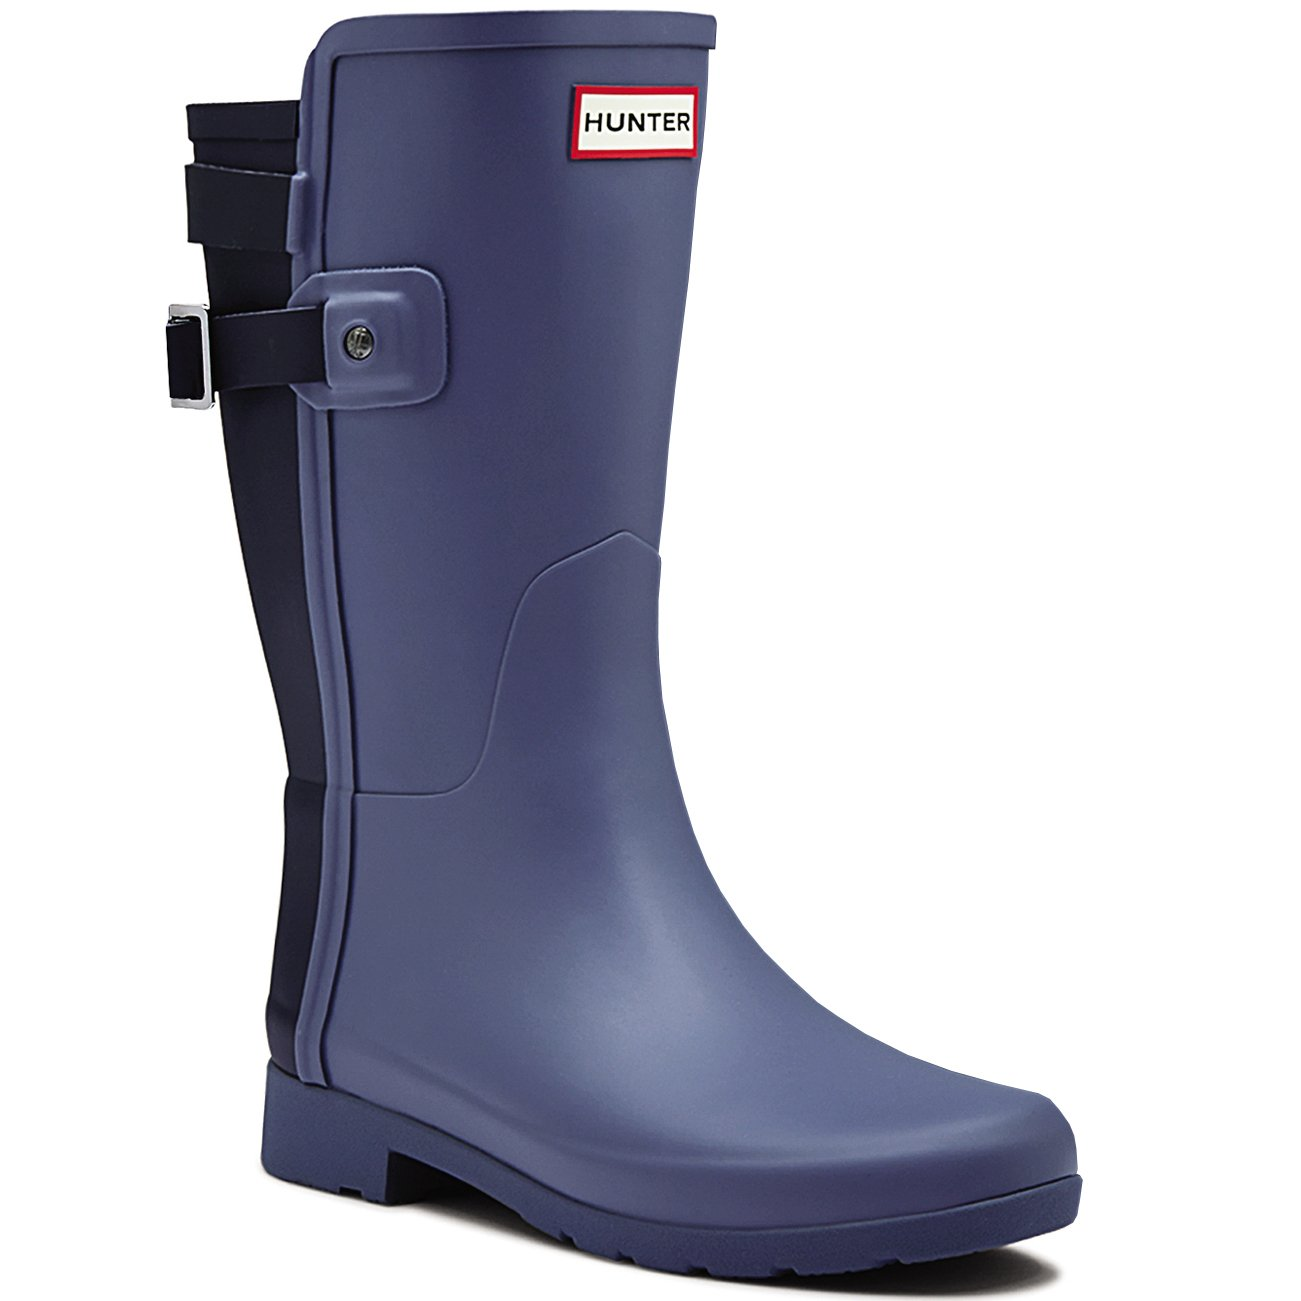 Womens Hunter Original Refined Back Strap Short Wellingtons Winter Boots B015SJC9V0 5 B(M) US|Mineral Blue/Midnight